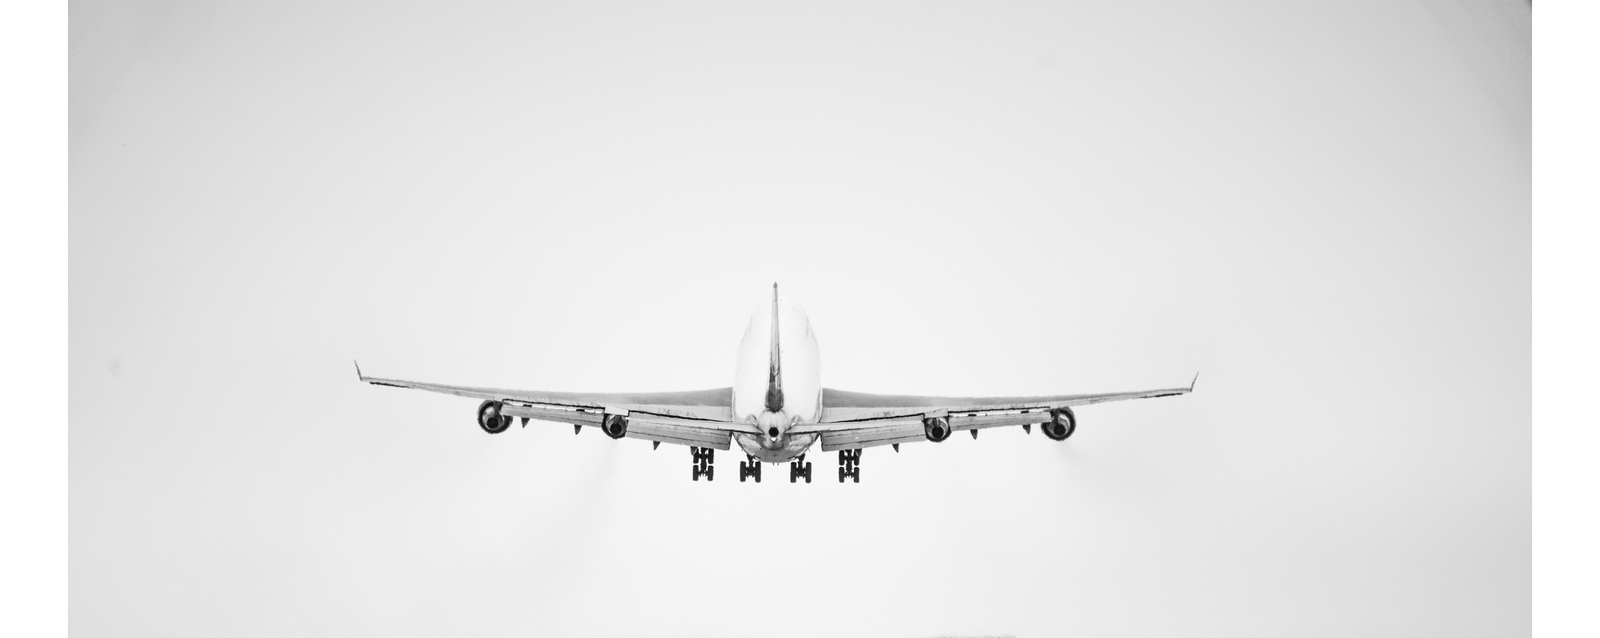 747 take off  - Delta 12-20-17 RobertEvansImagery com -02268 (1)